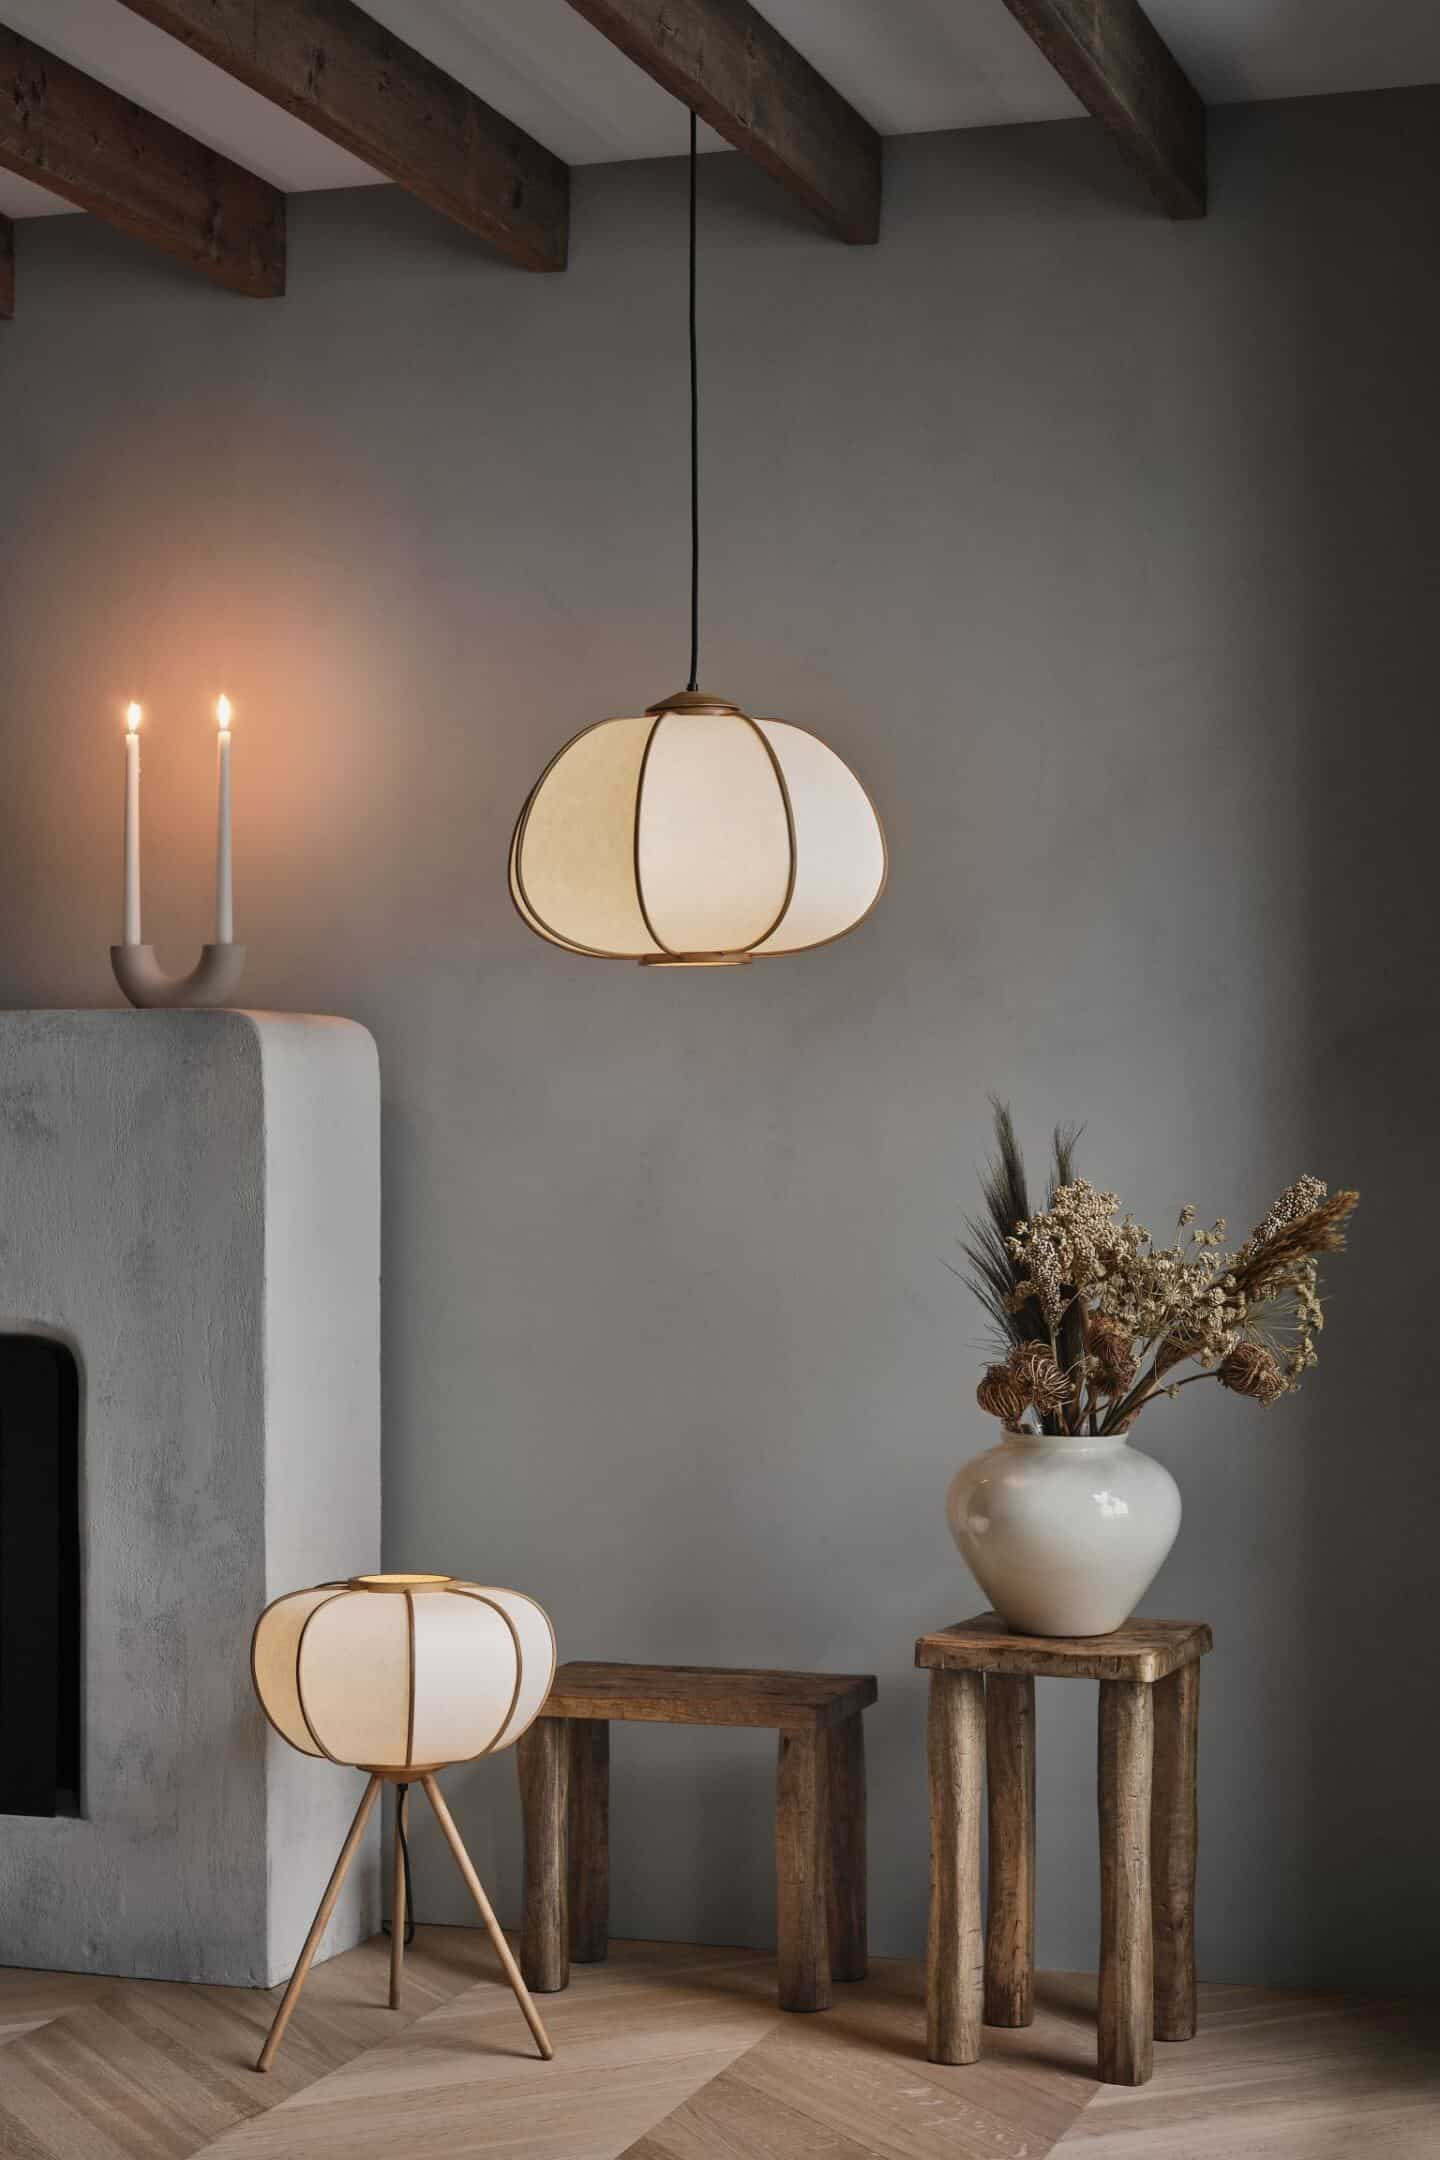 BAmboo floor lamo and pendant light from H&M Home